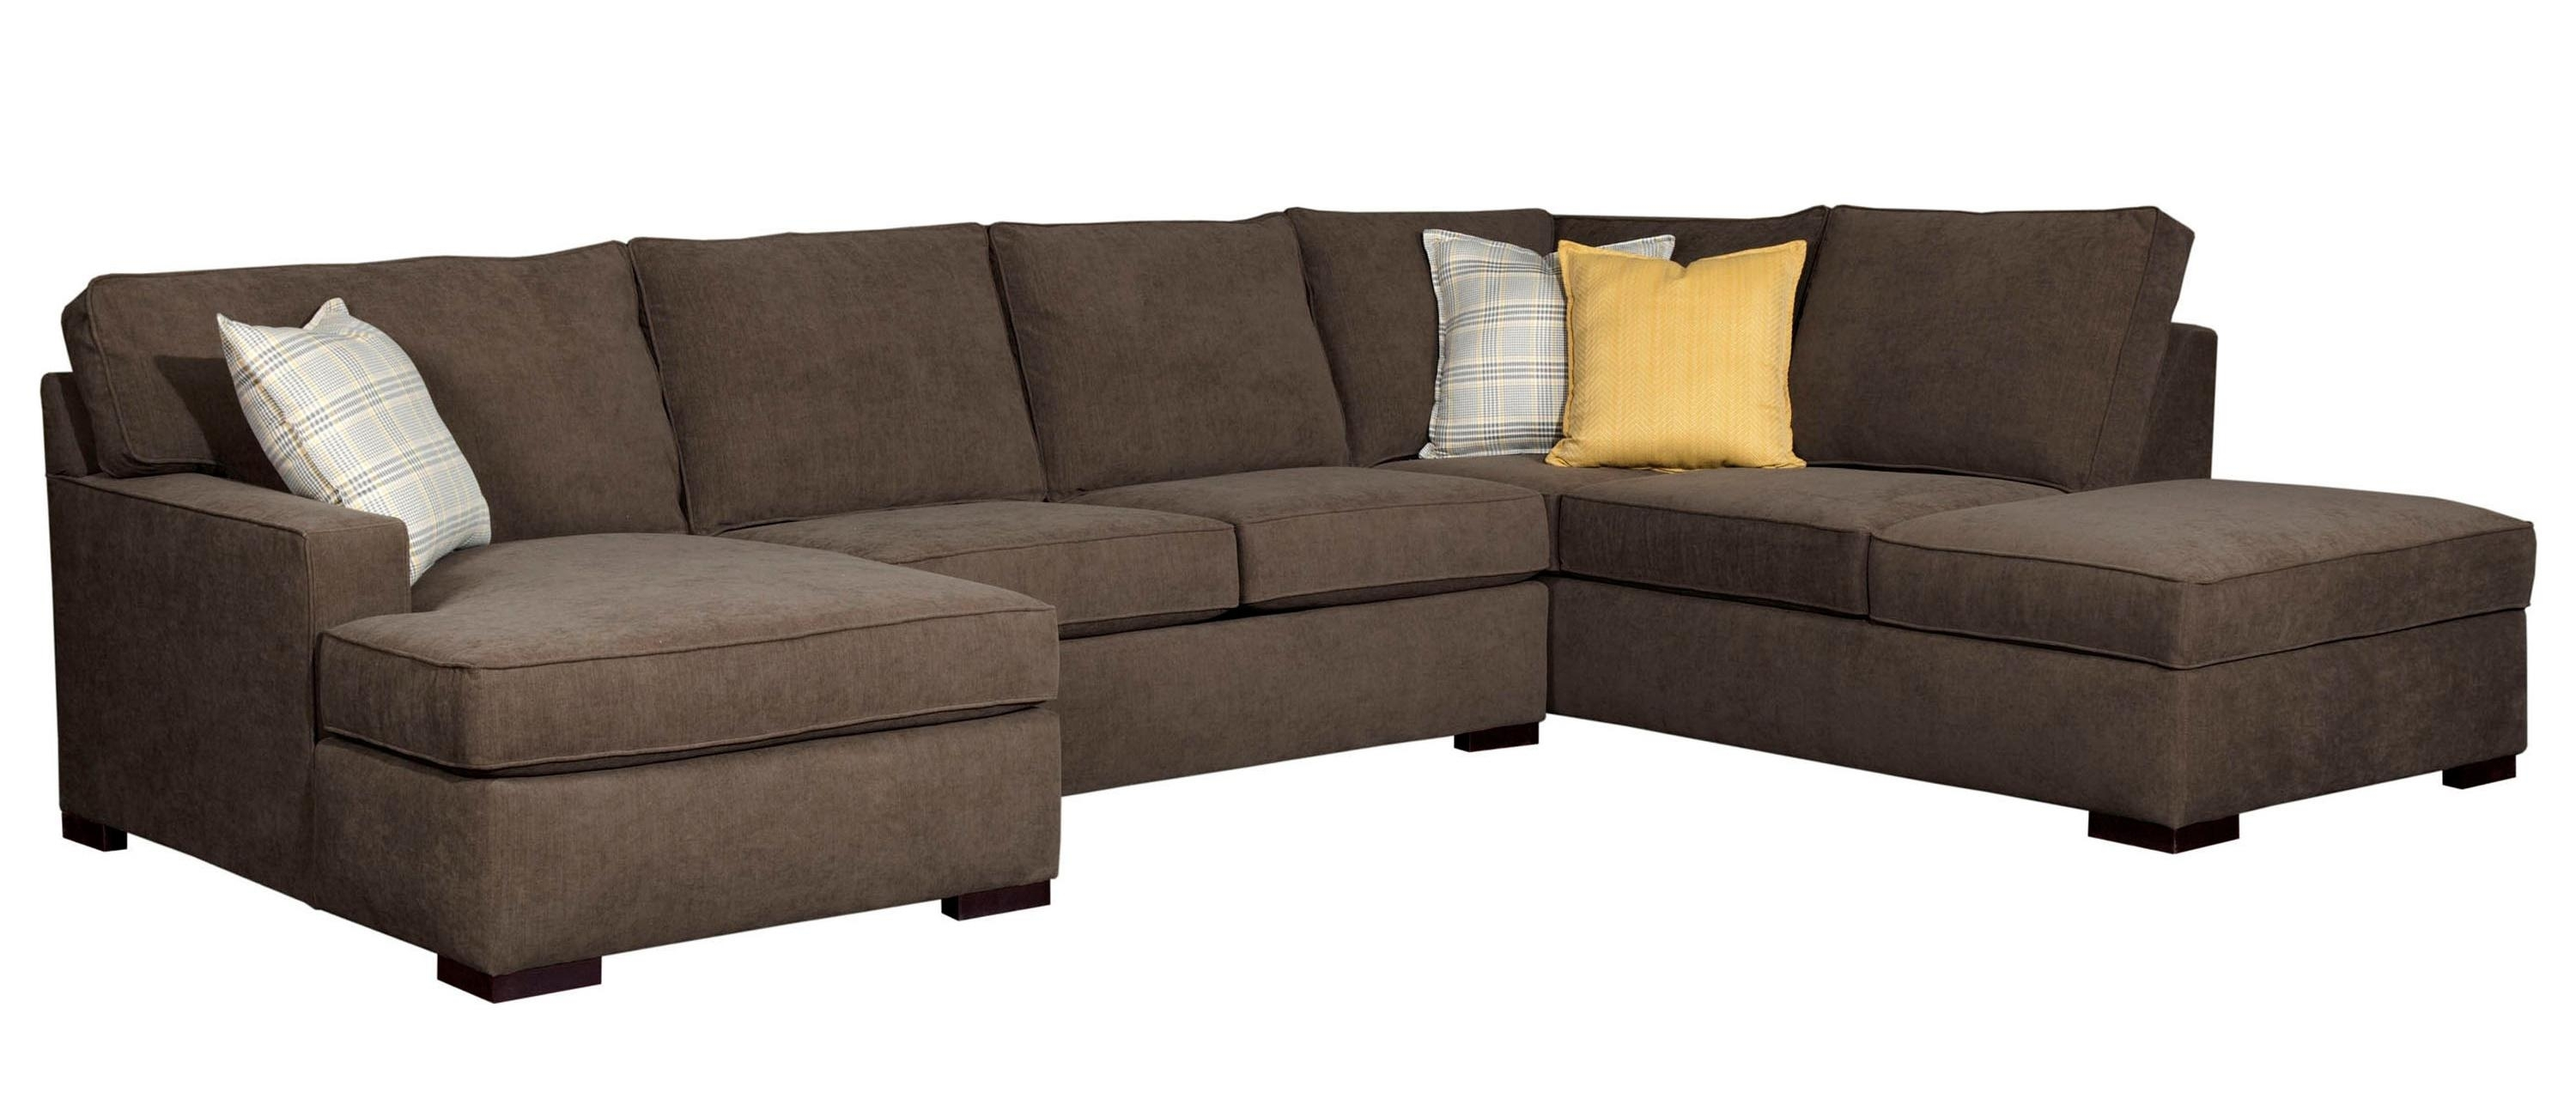 Broyhill Furniture Raphael Contemporary Sectional Sofa With Laf Intended For Sectional Sofas At Broyhill (View 4 of 15)